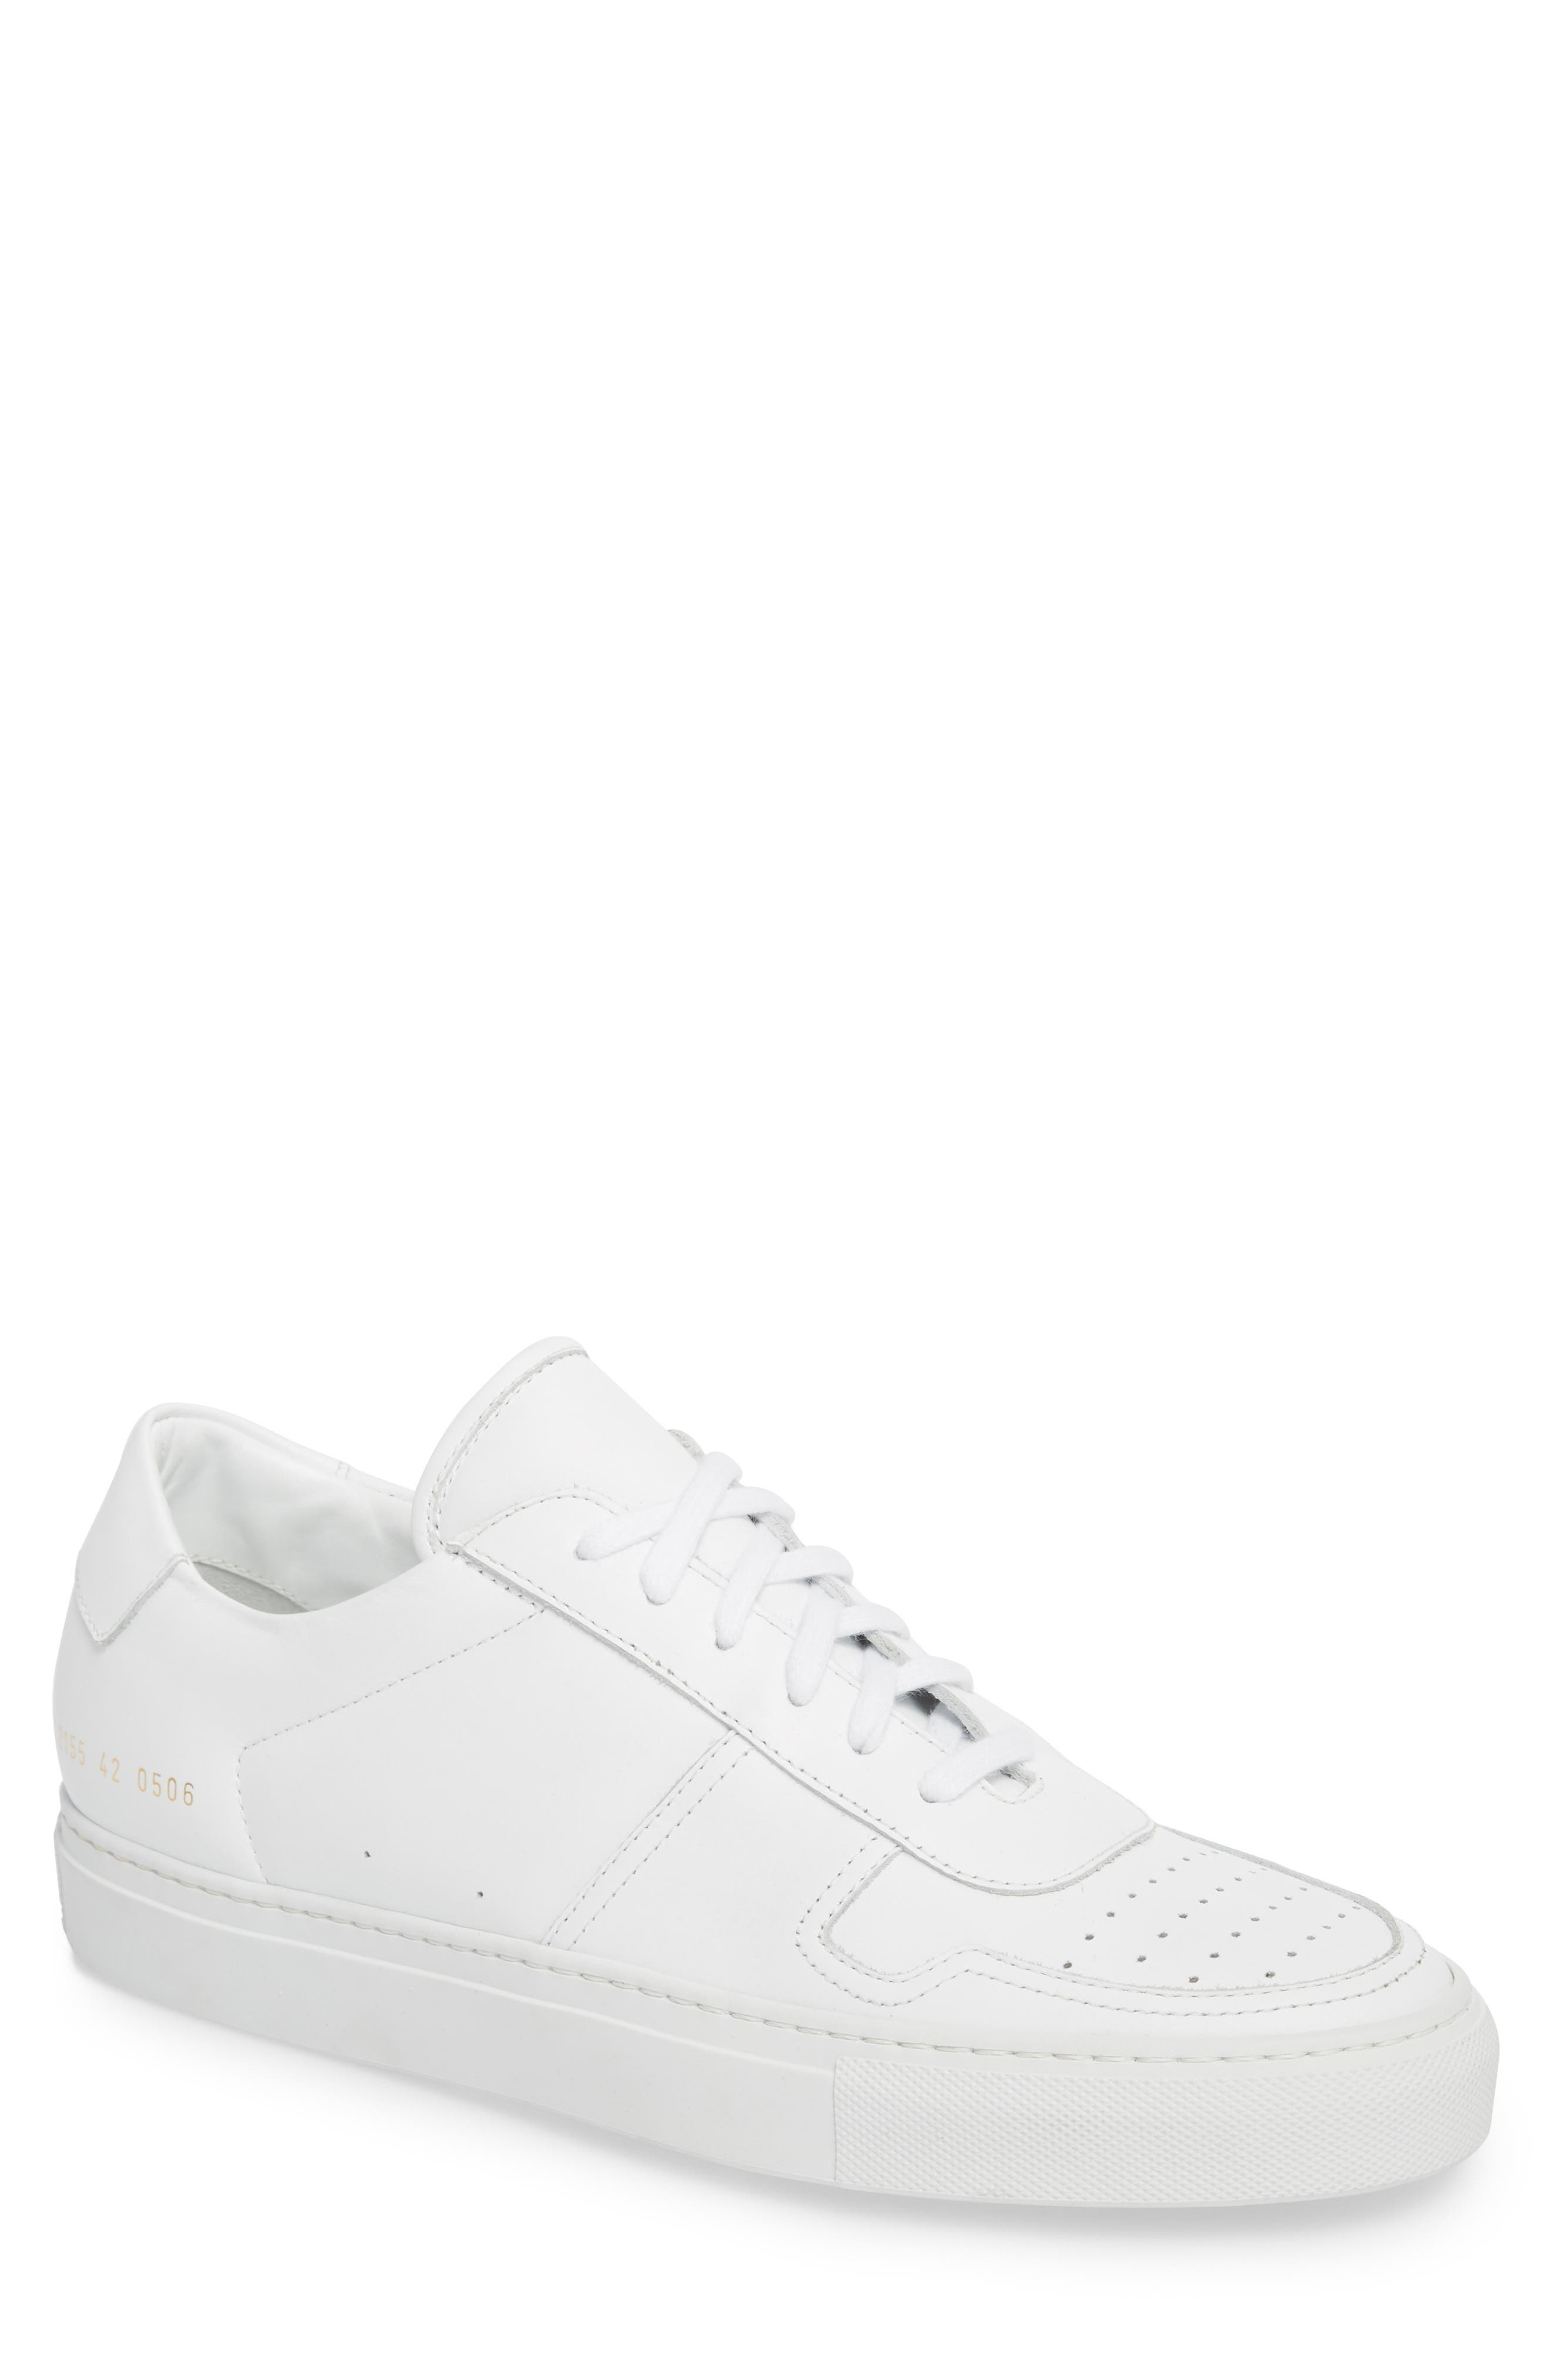 Common Projects | Nordstrom